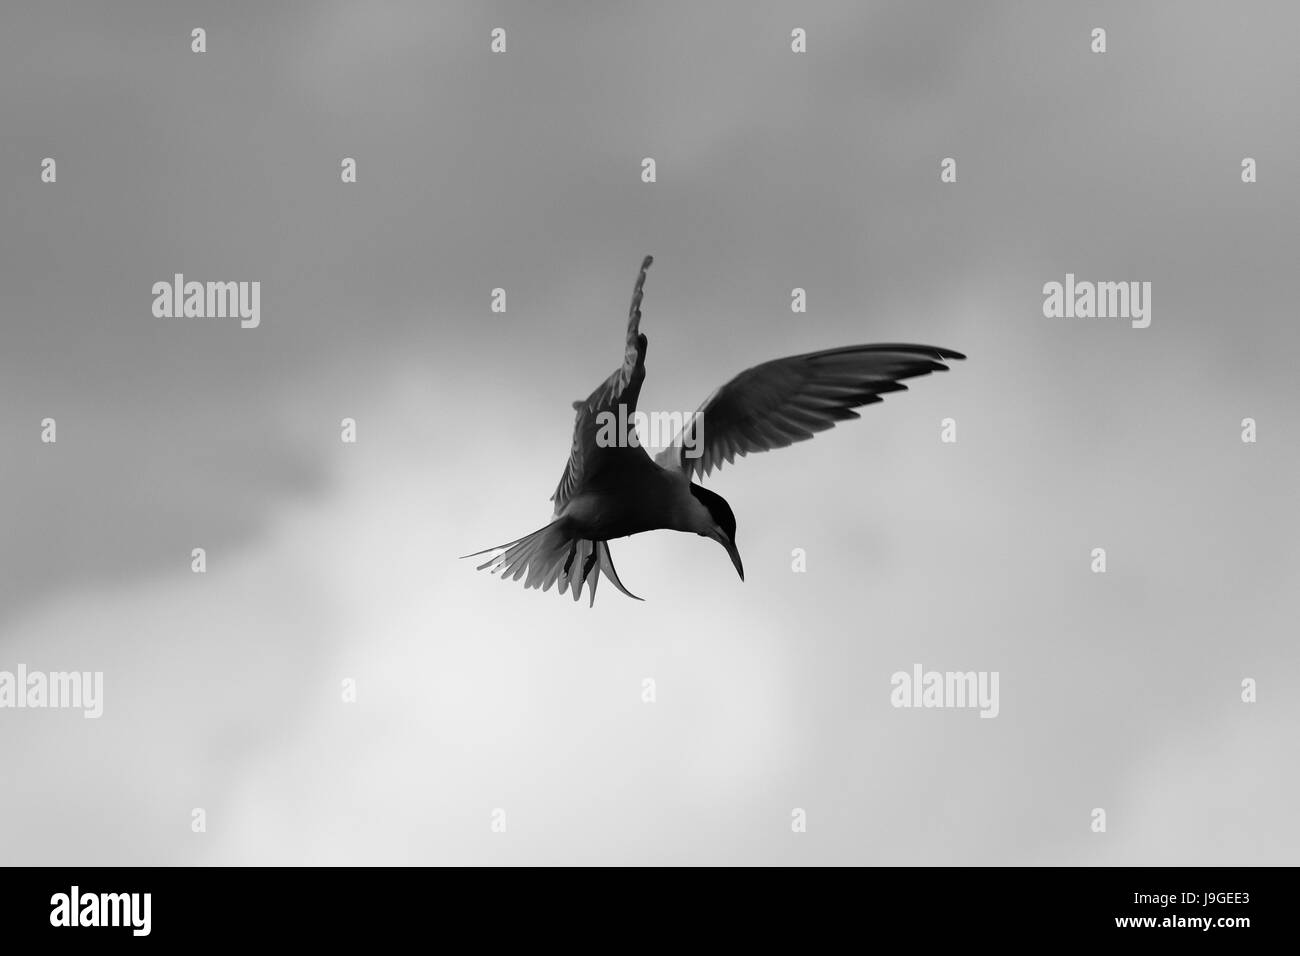 Common tern diving and emerging from the lake in search of fish food - Stock Image